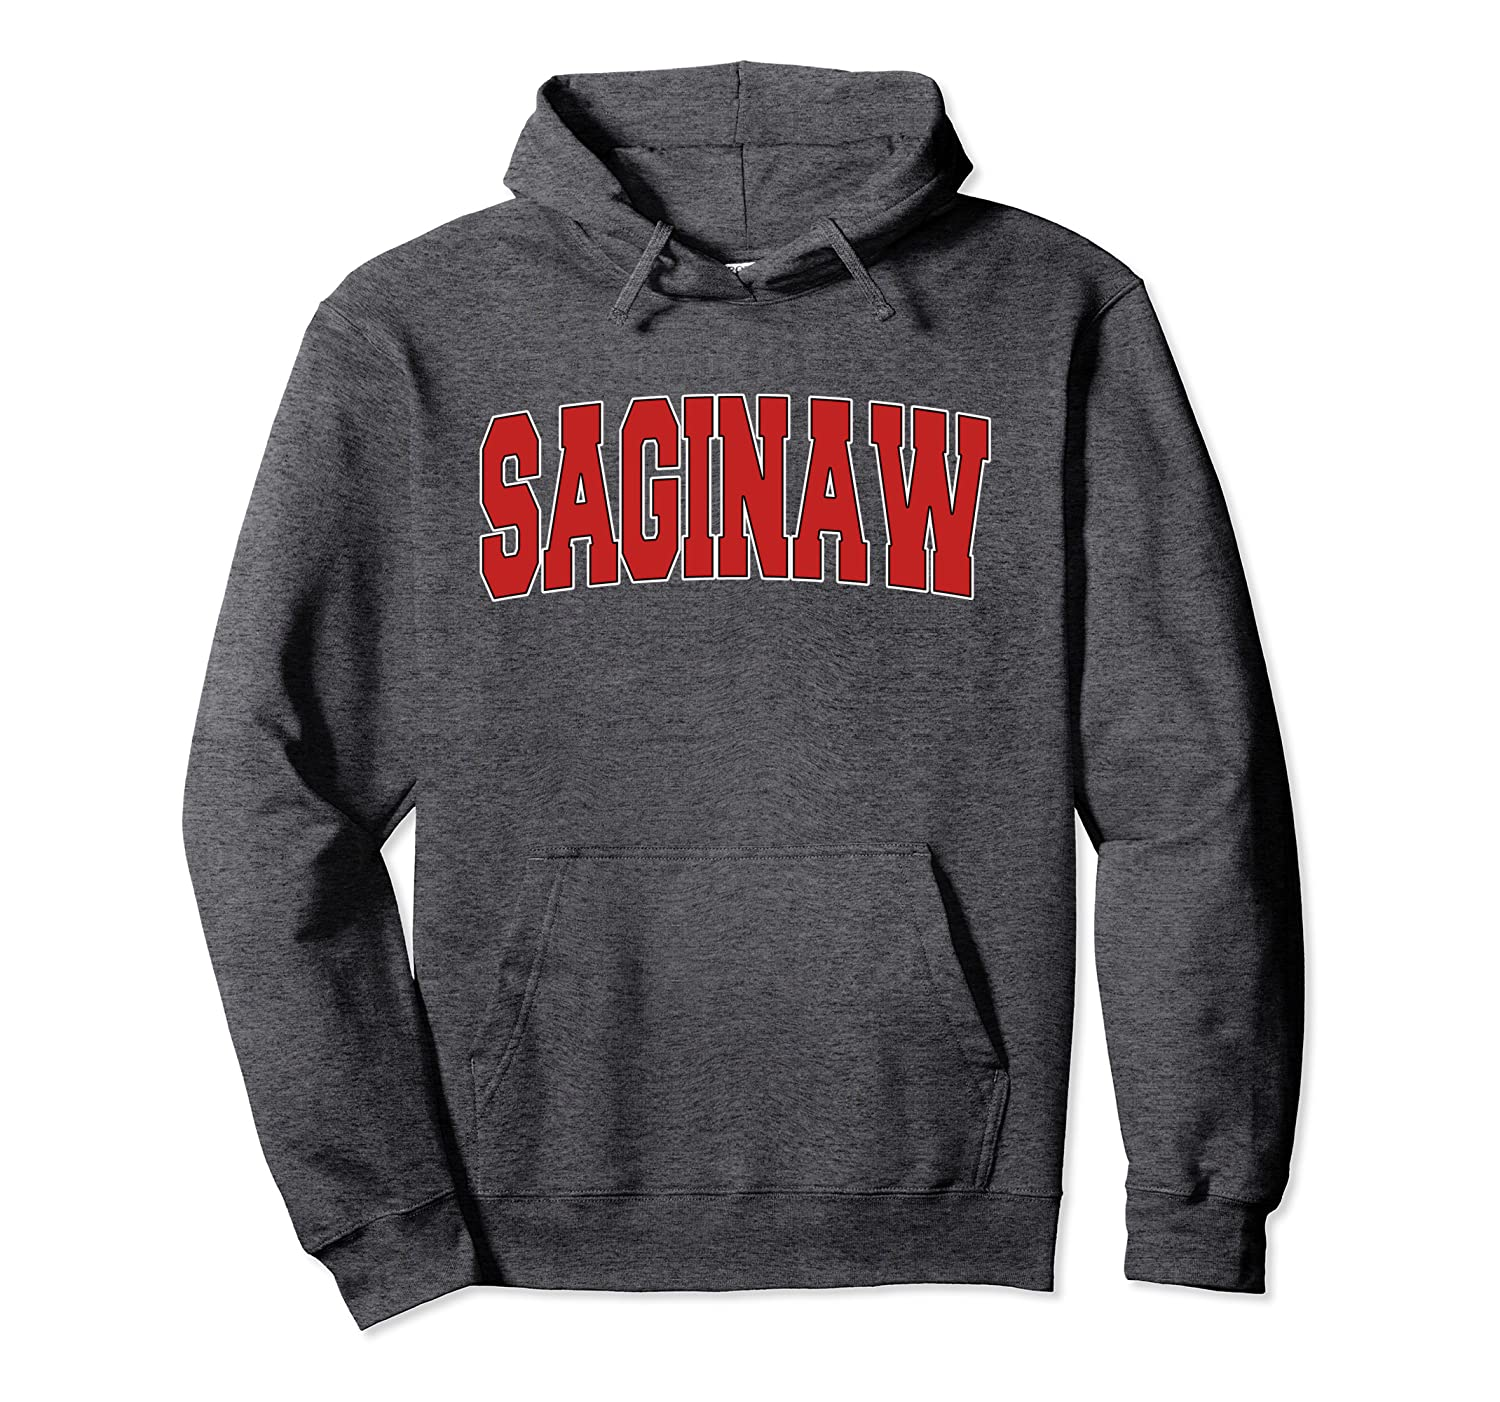 SAGINAW MI MICHIGAN Varsity Style USA Vintage Sports Pullover Hoodie